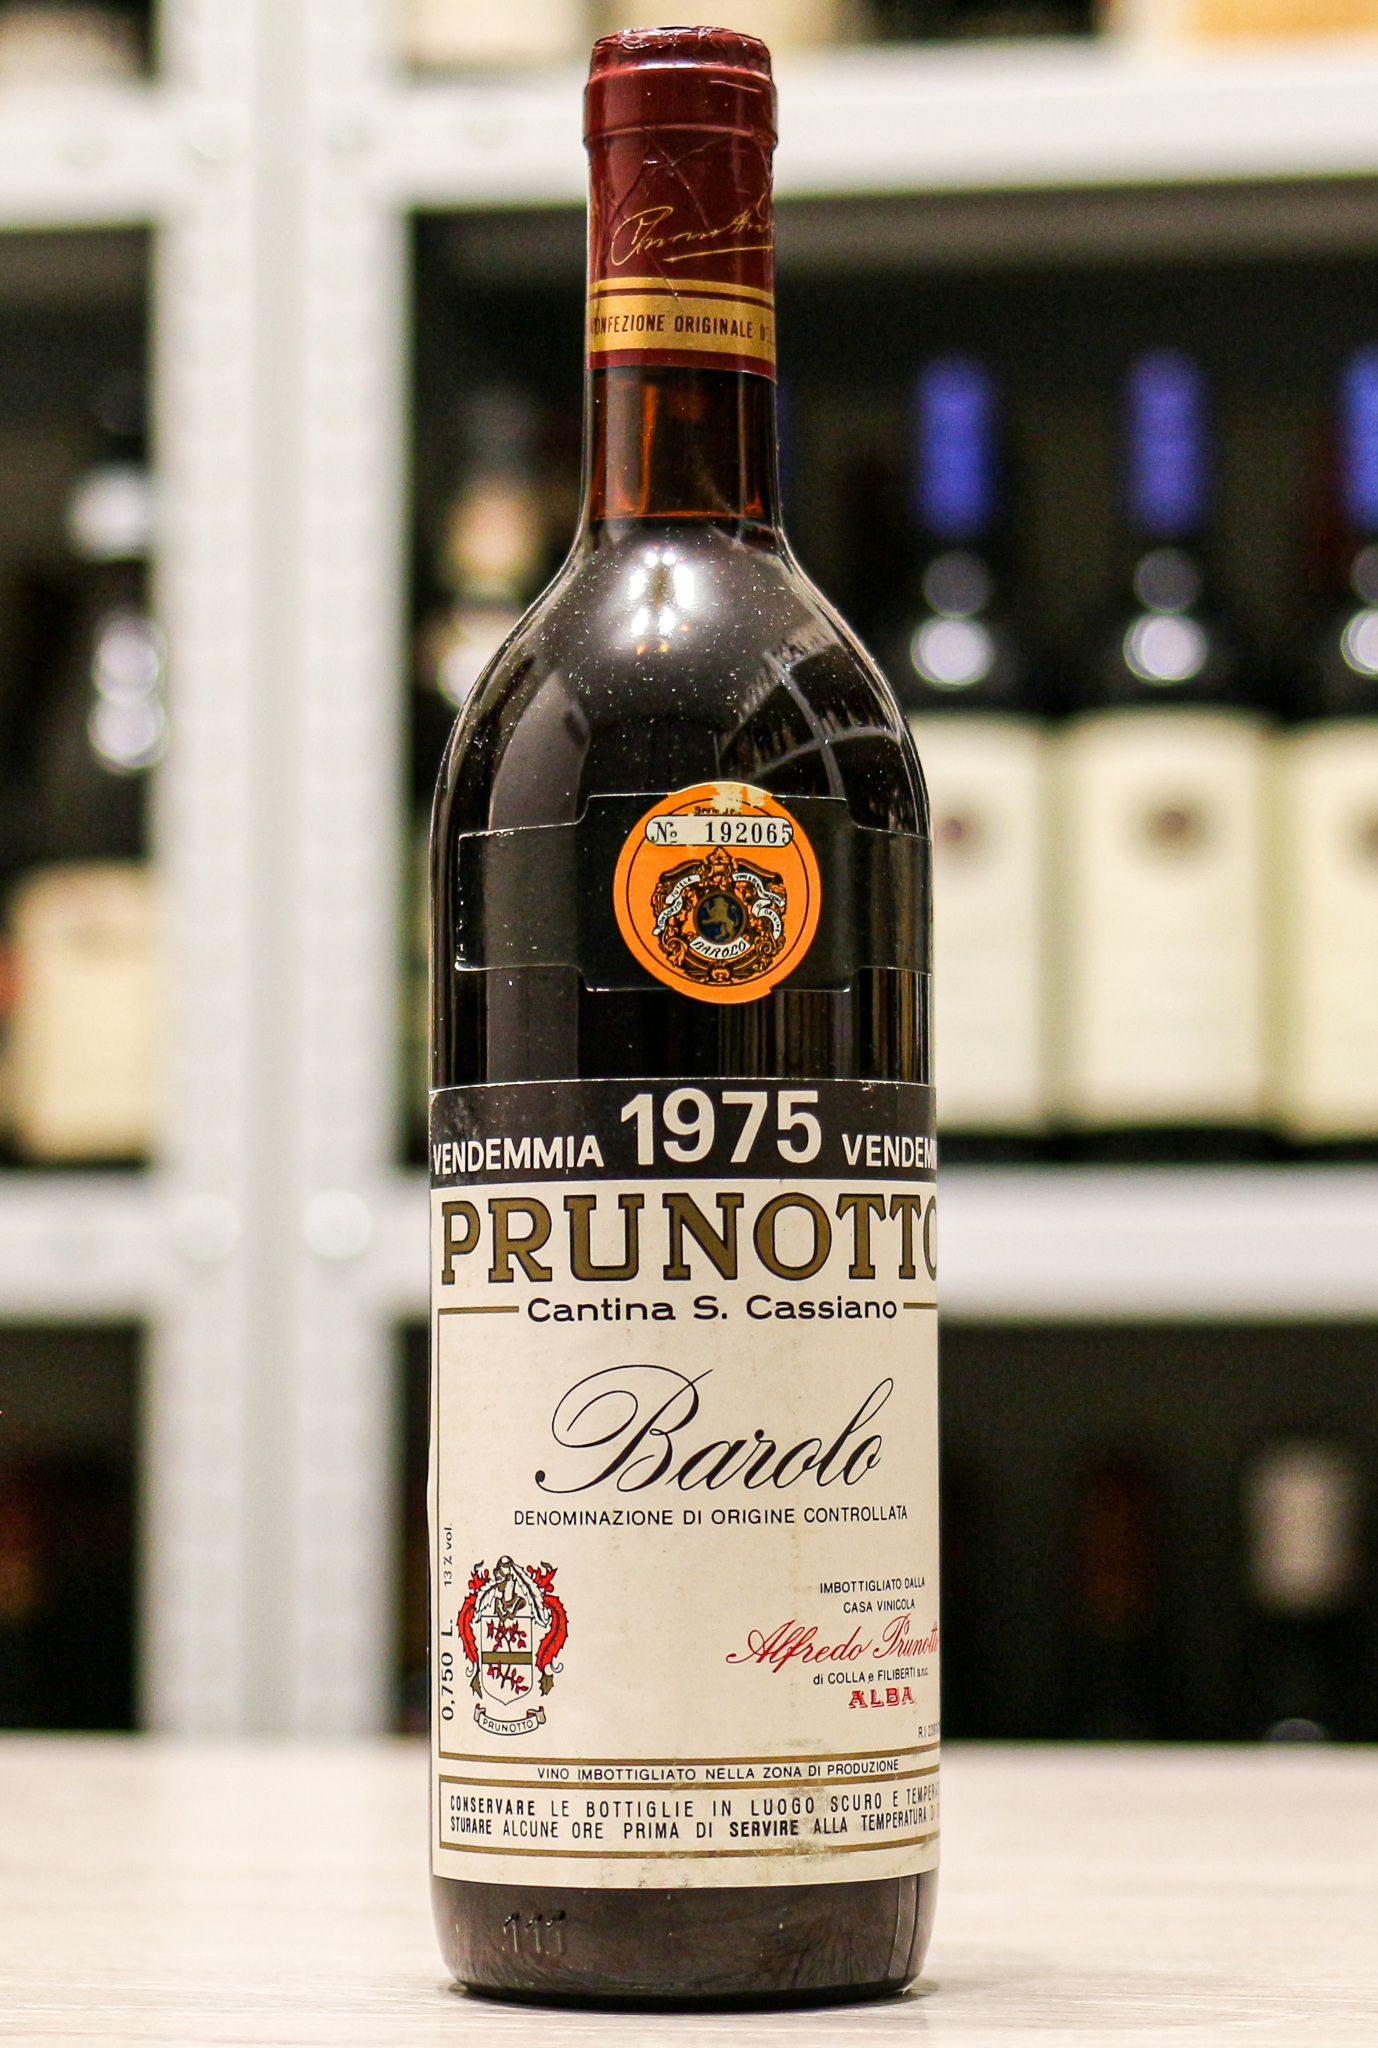 Красное вино Barolo Prunotto 1975 года урожая